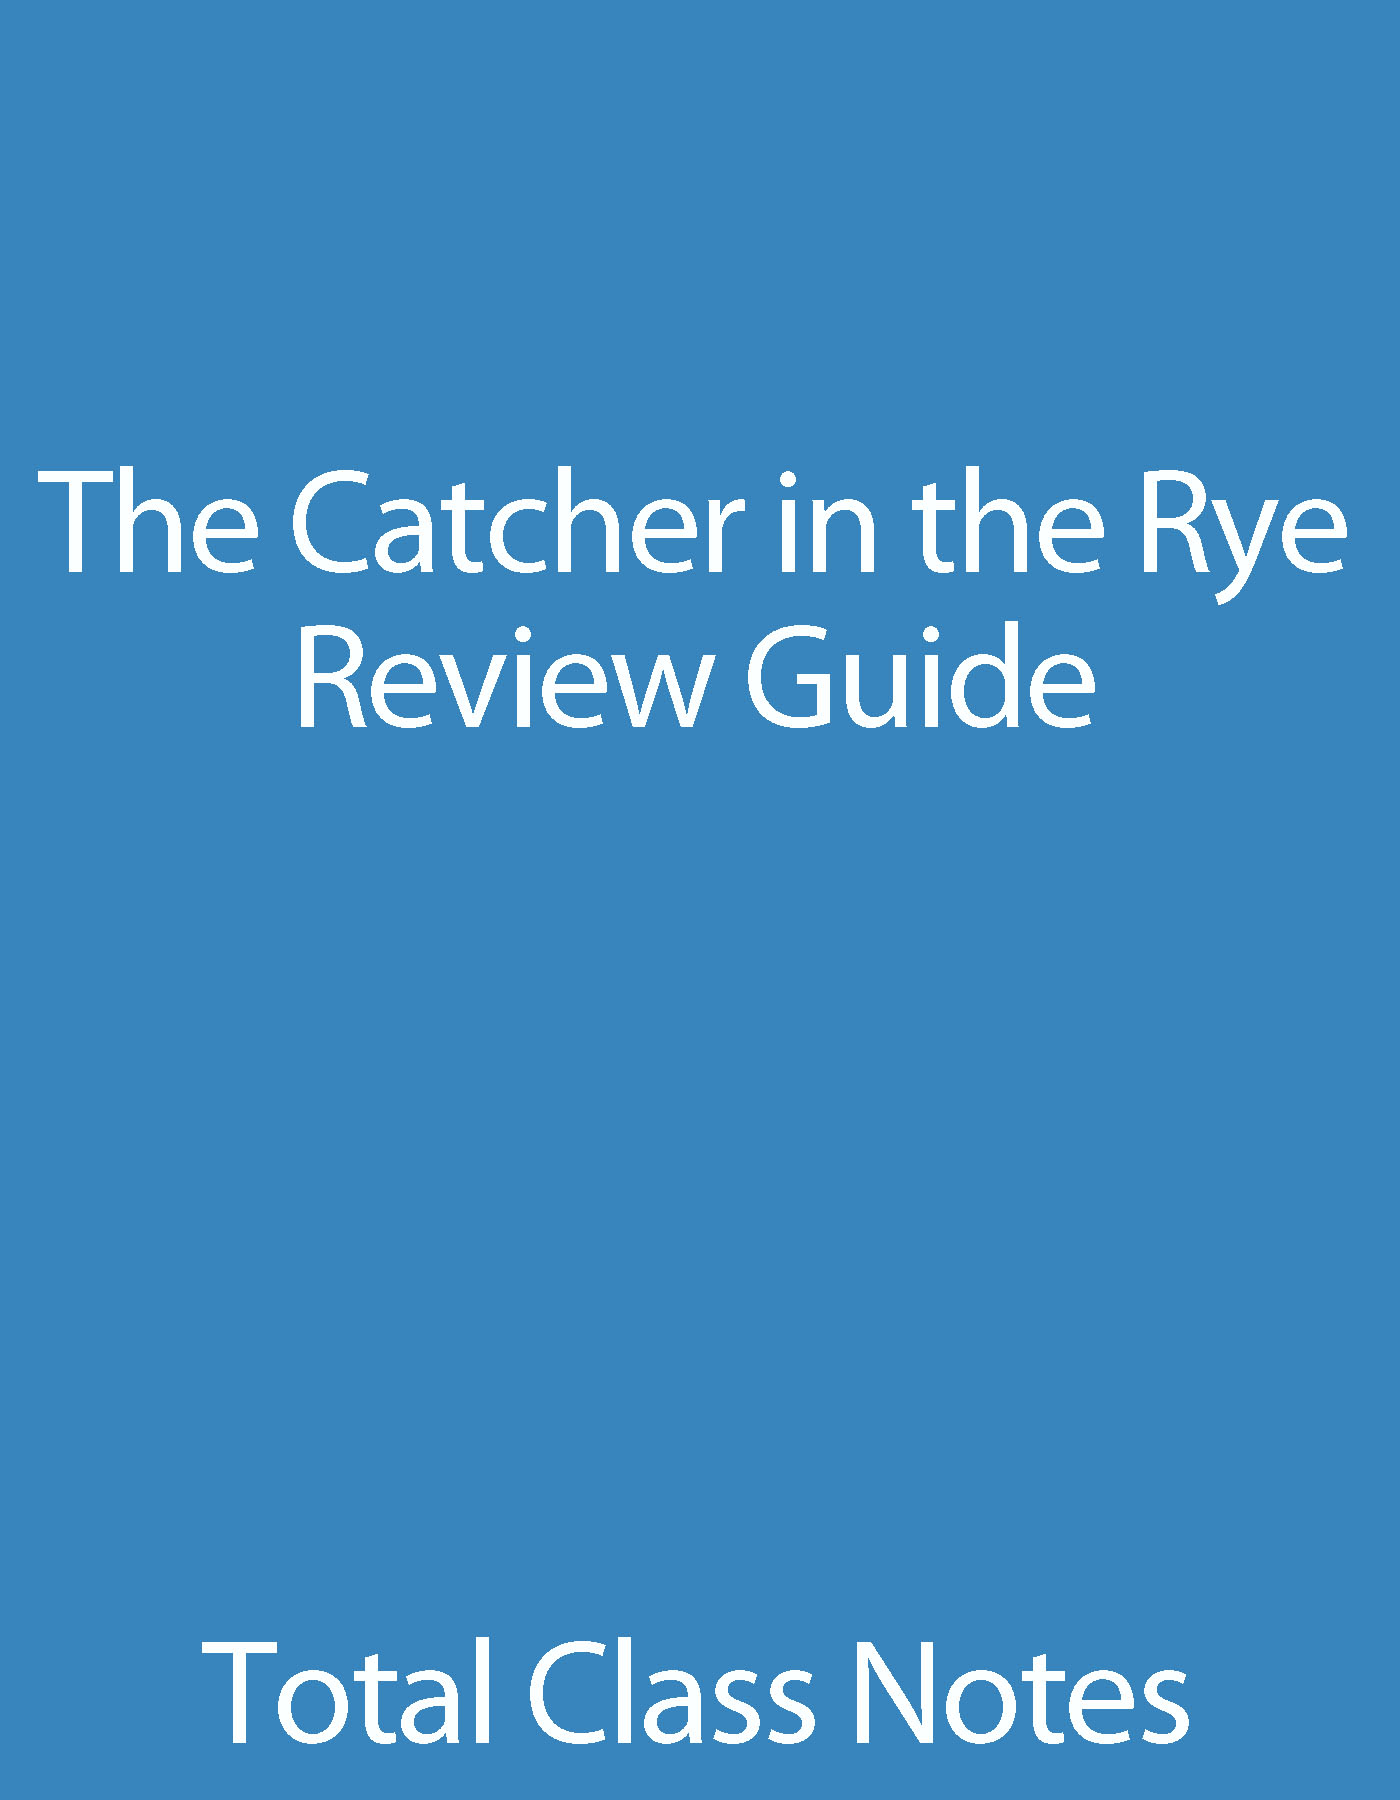 an analysis of literature characters in the novel the catcher in the rye by jd salinger